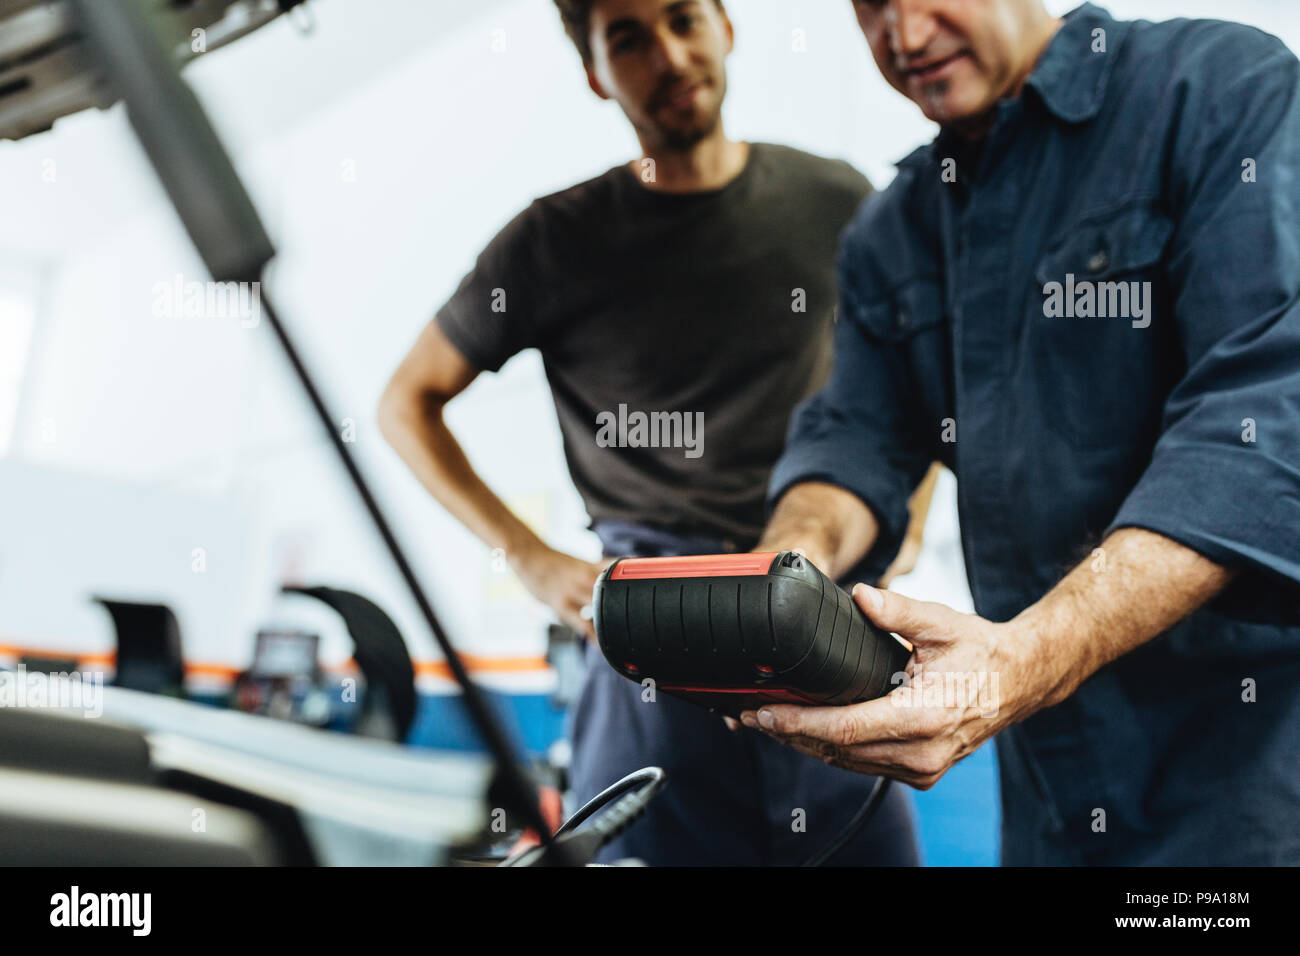 Automobile mechanics holding a device for checking engine condition. Mechanics diagnosing a car engine with device in service station. Stock Photo